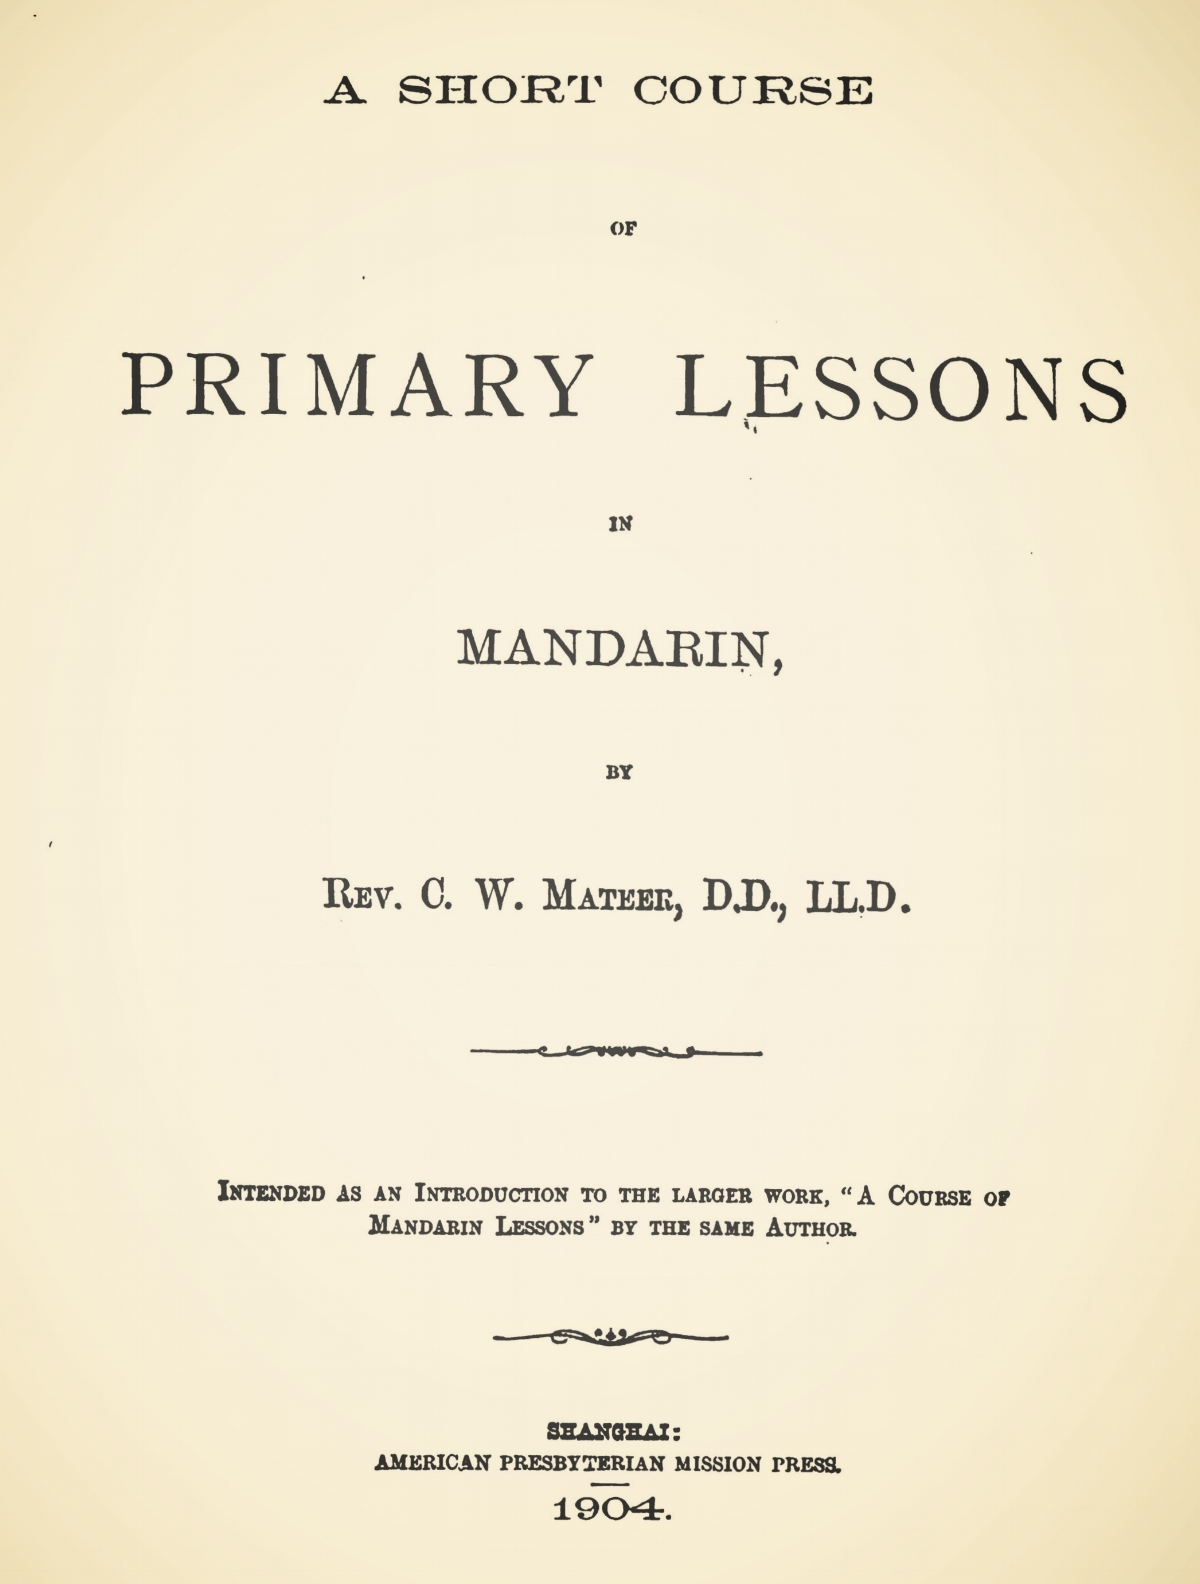 Mateer, Calvin Wilson, A Short Course of Primary Lessons in Mandarin Title Page.jpg